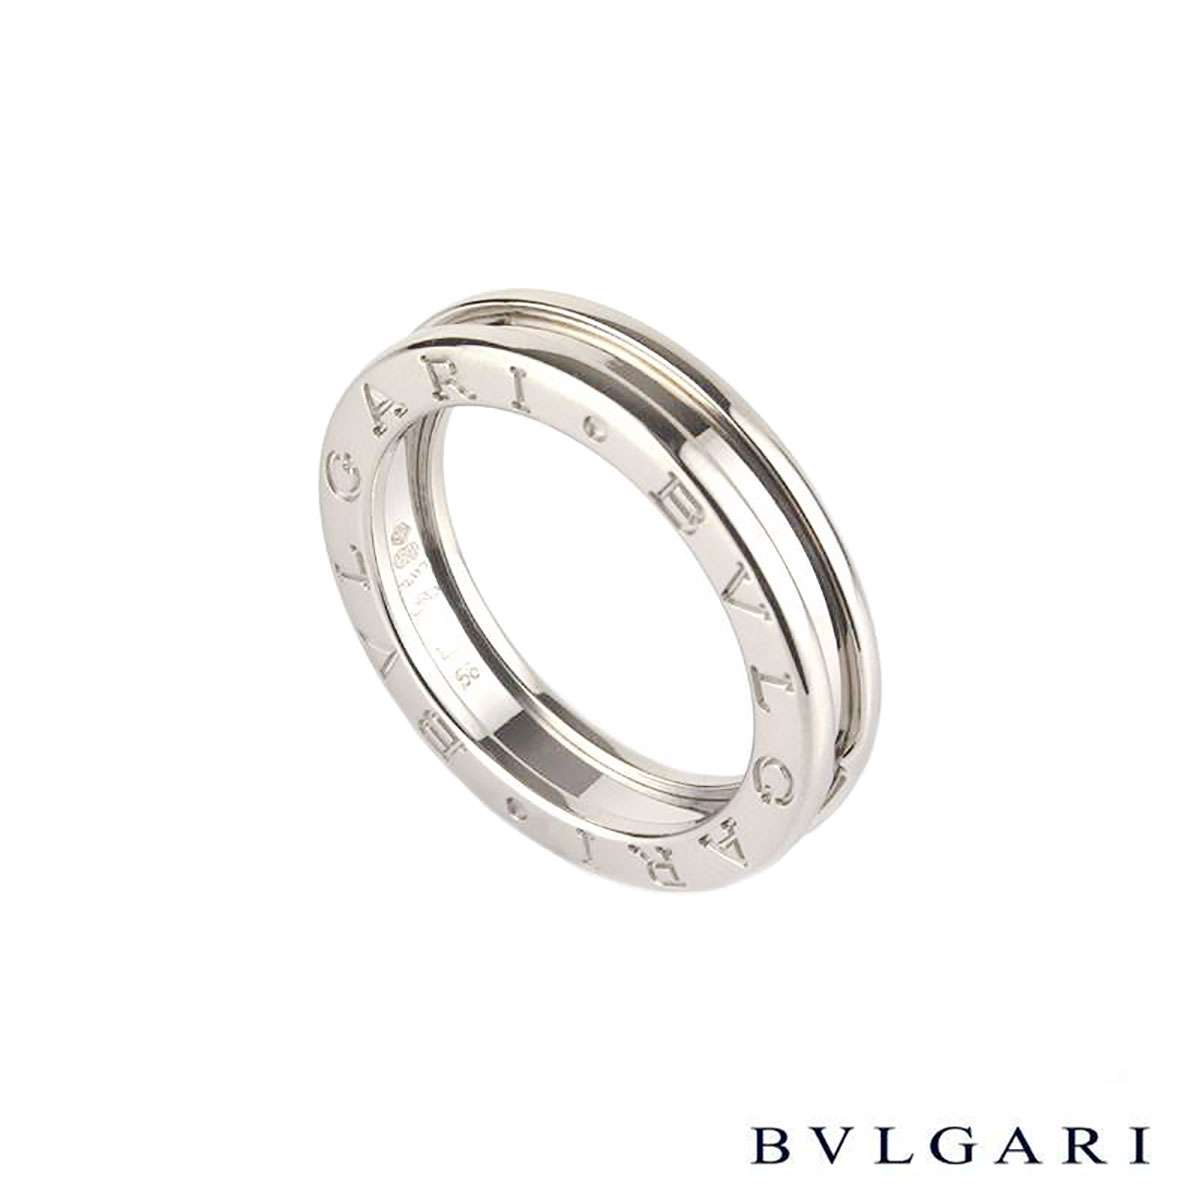 Bvlgari 18k white gold B.zero1 Ring Size 50 AN852423